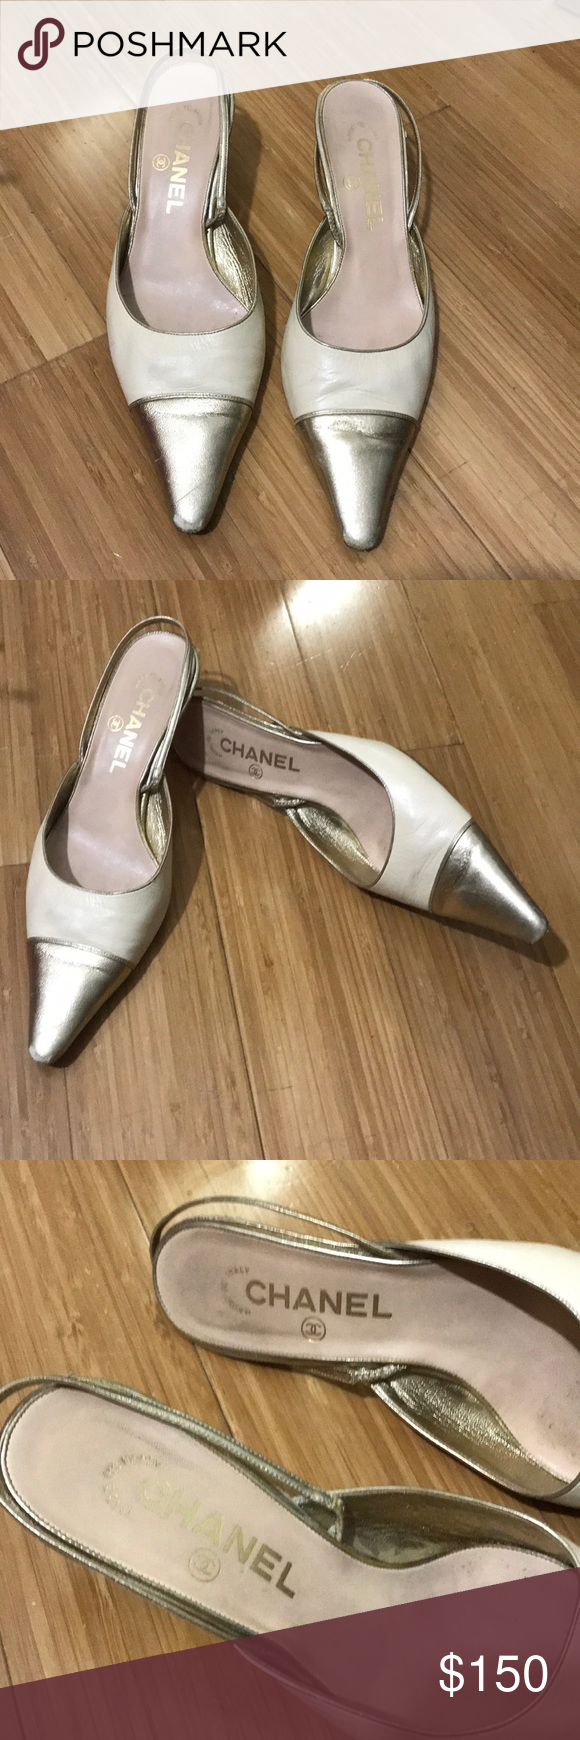 "0b05ade19b7cf Chanel Cap Toe Sling Back Heels Authentic - taupe/gold cap toe leather heels  - 2"" - gold heel and strap - some wear on tip of toe - prices accordingly  ..."